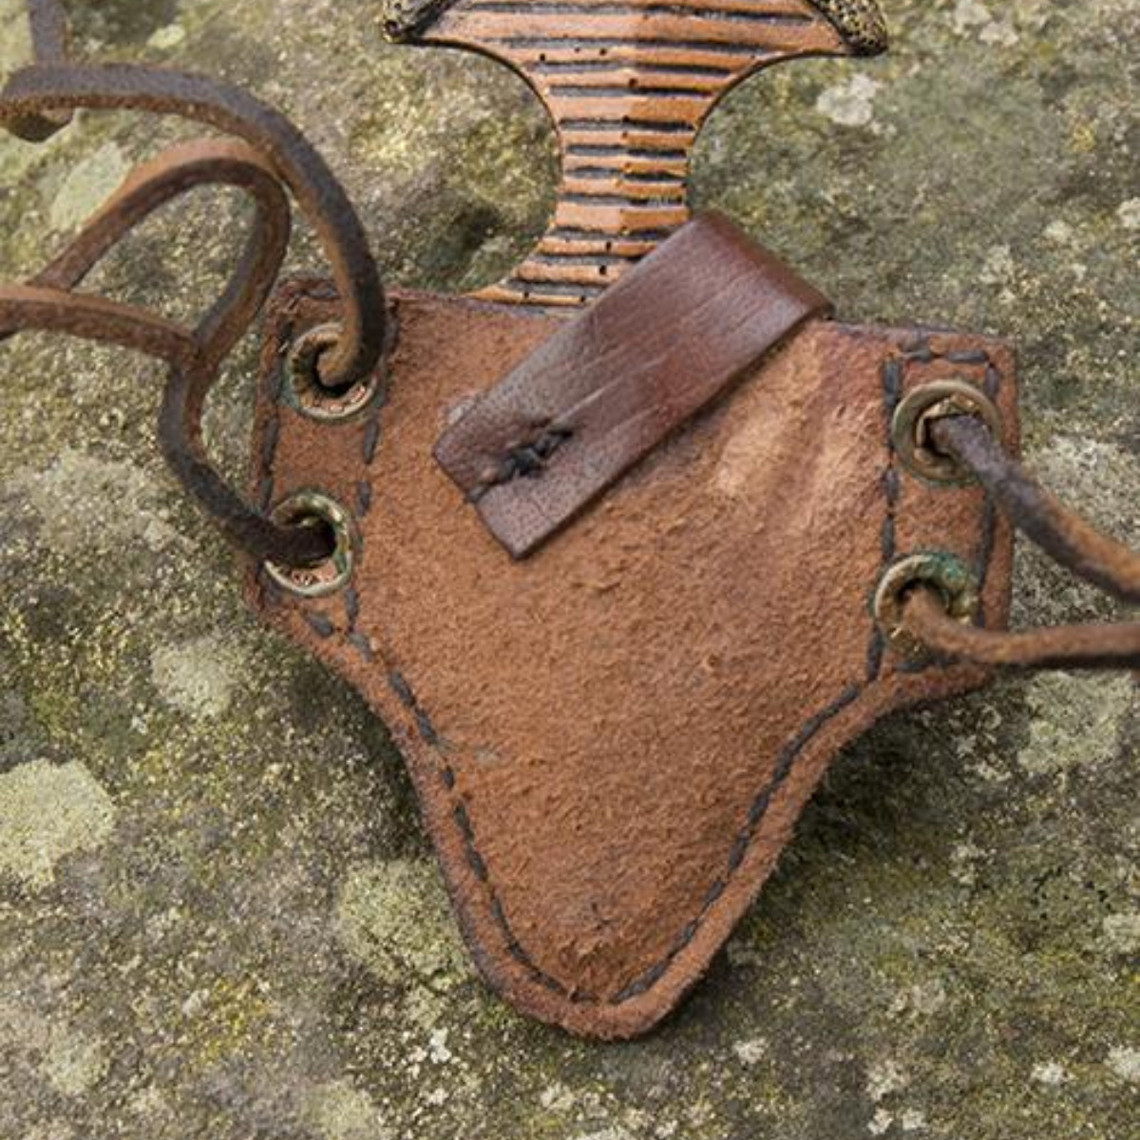 Epic Armoury LARP wrist dagger with holder, brown